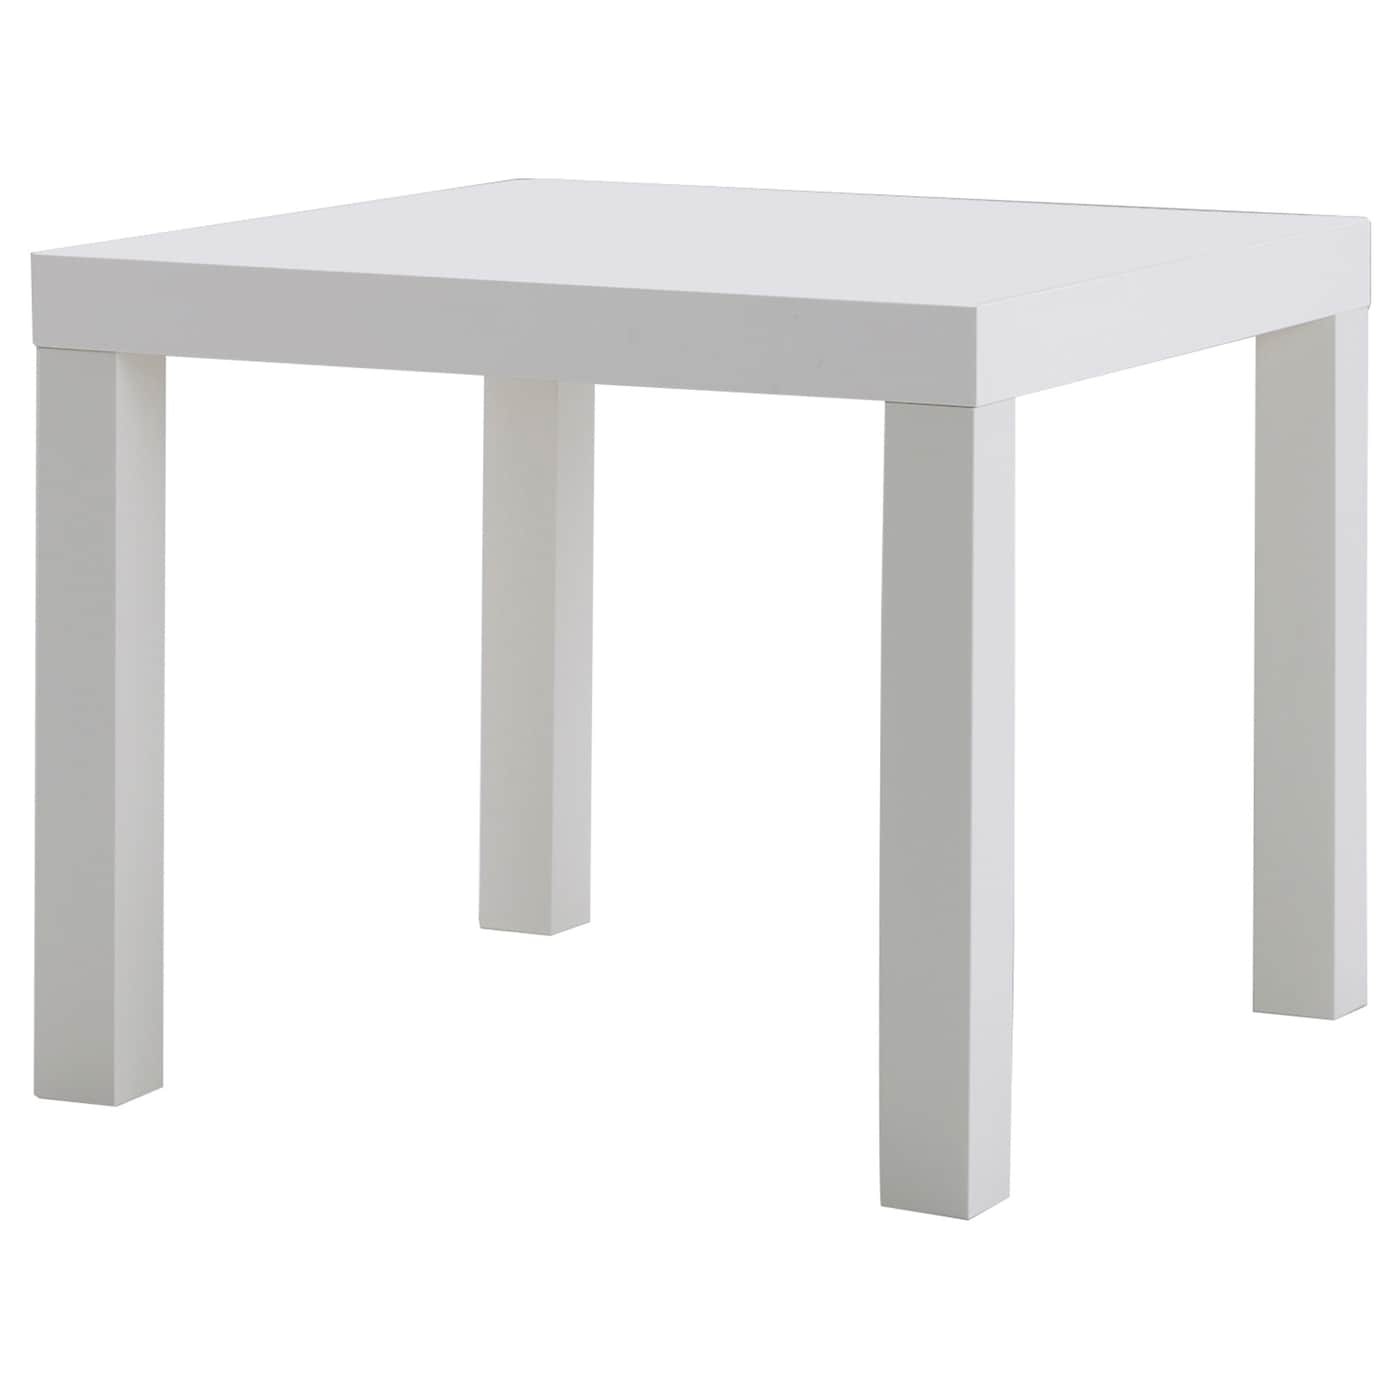 Lack side table white 55x55 cm ikea for Table blanche ikea